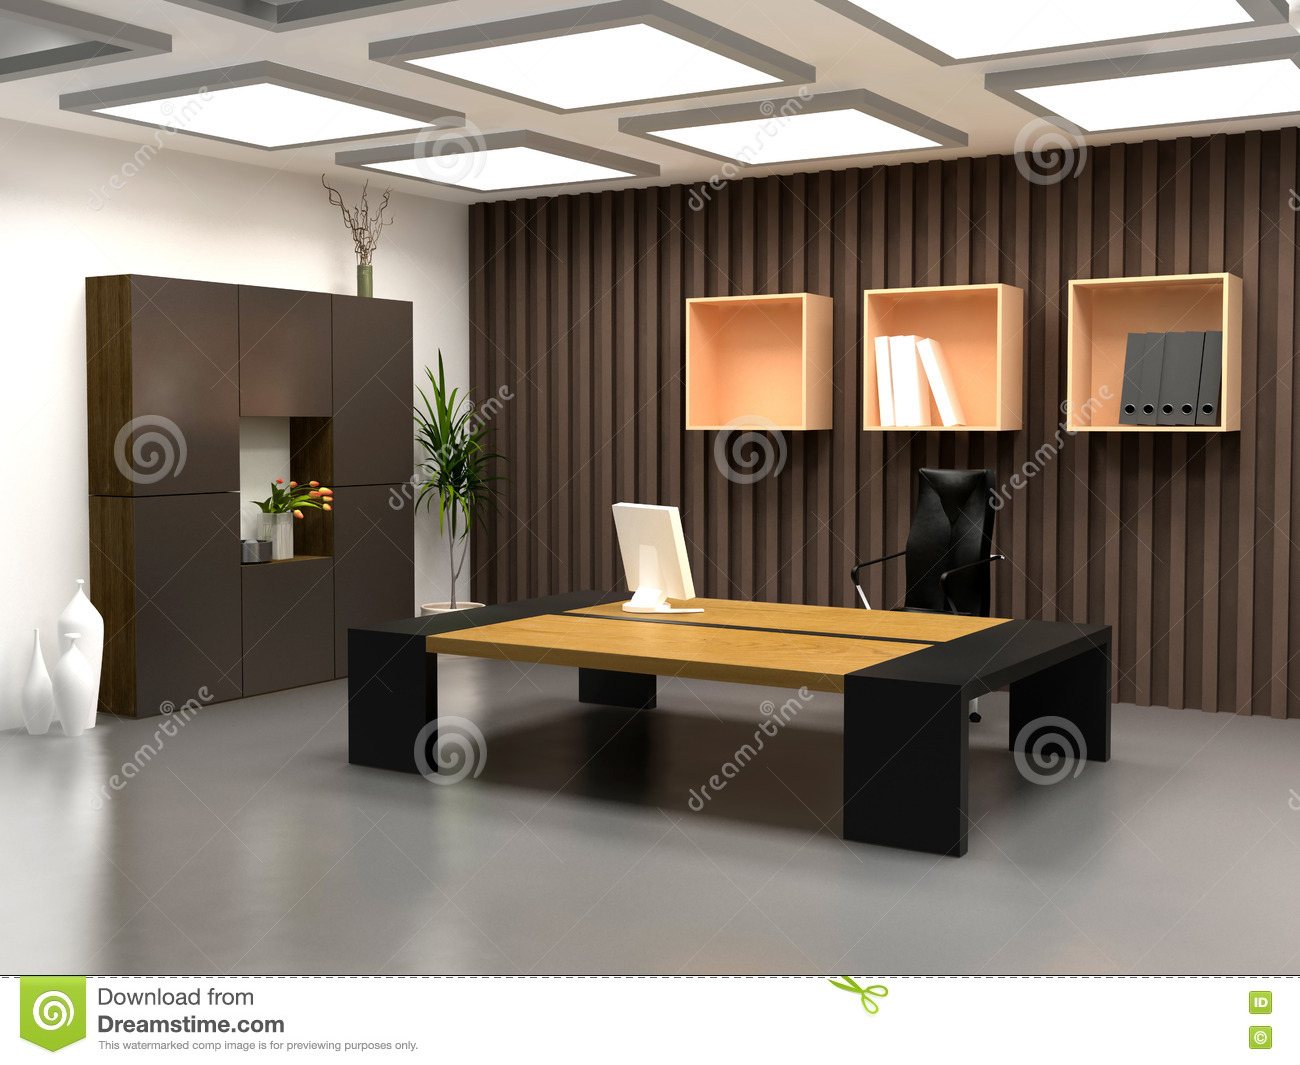 le bureau moderne image stock image du conception pr sidences 2263385. Black Bedroom Furniture Sets. Home Design Ideas